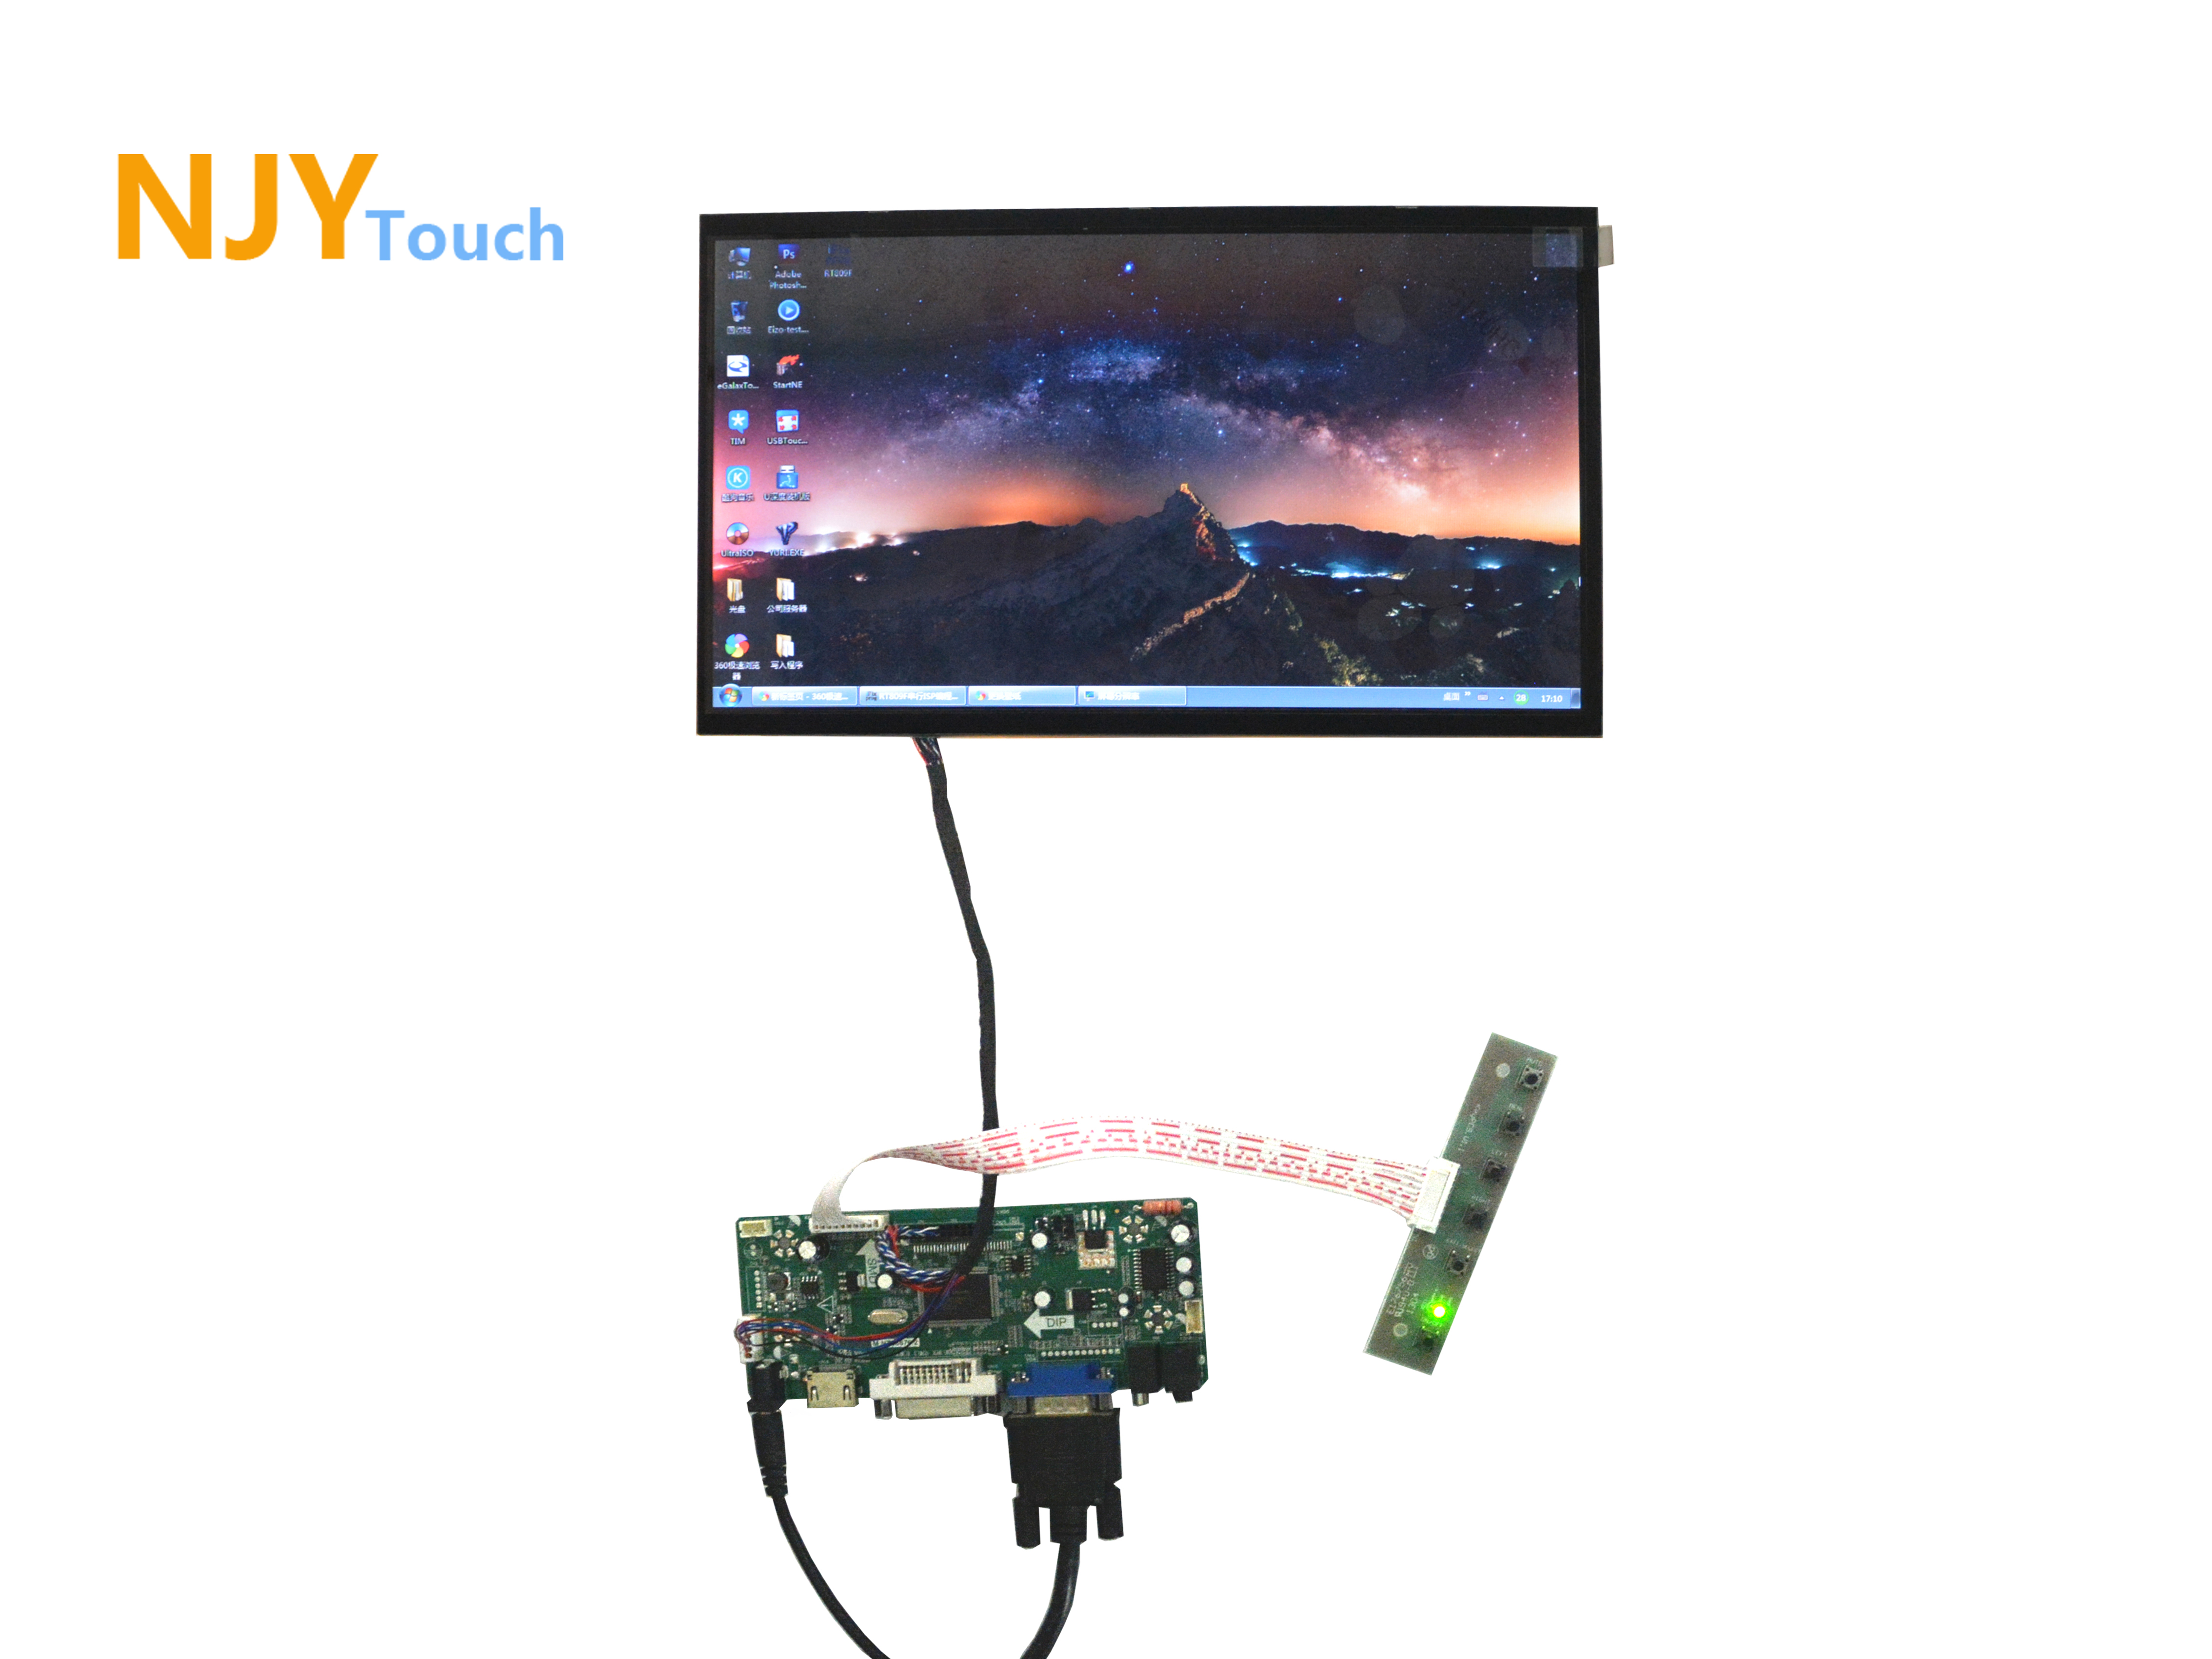 NJYTouch M.NT68676.2A HDMI DVI VGA Audio LCD Controller Board With 11.6inch B116XW02 1366x768 40Pin LED Screen